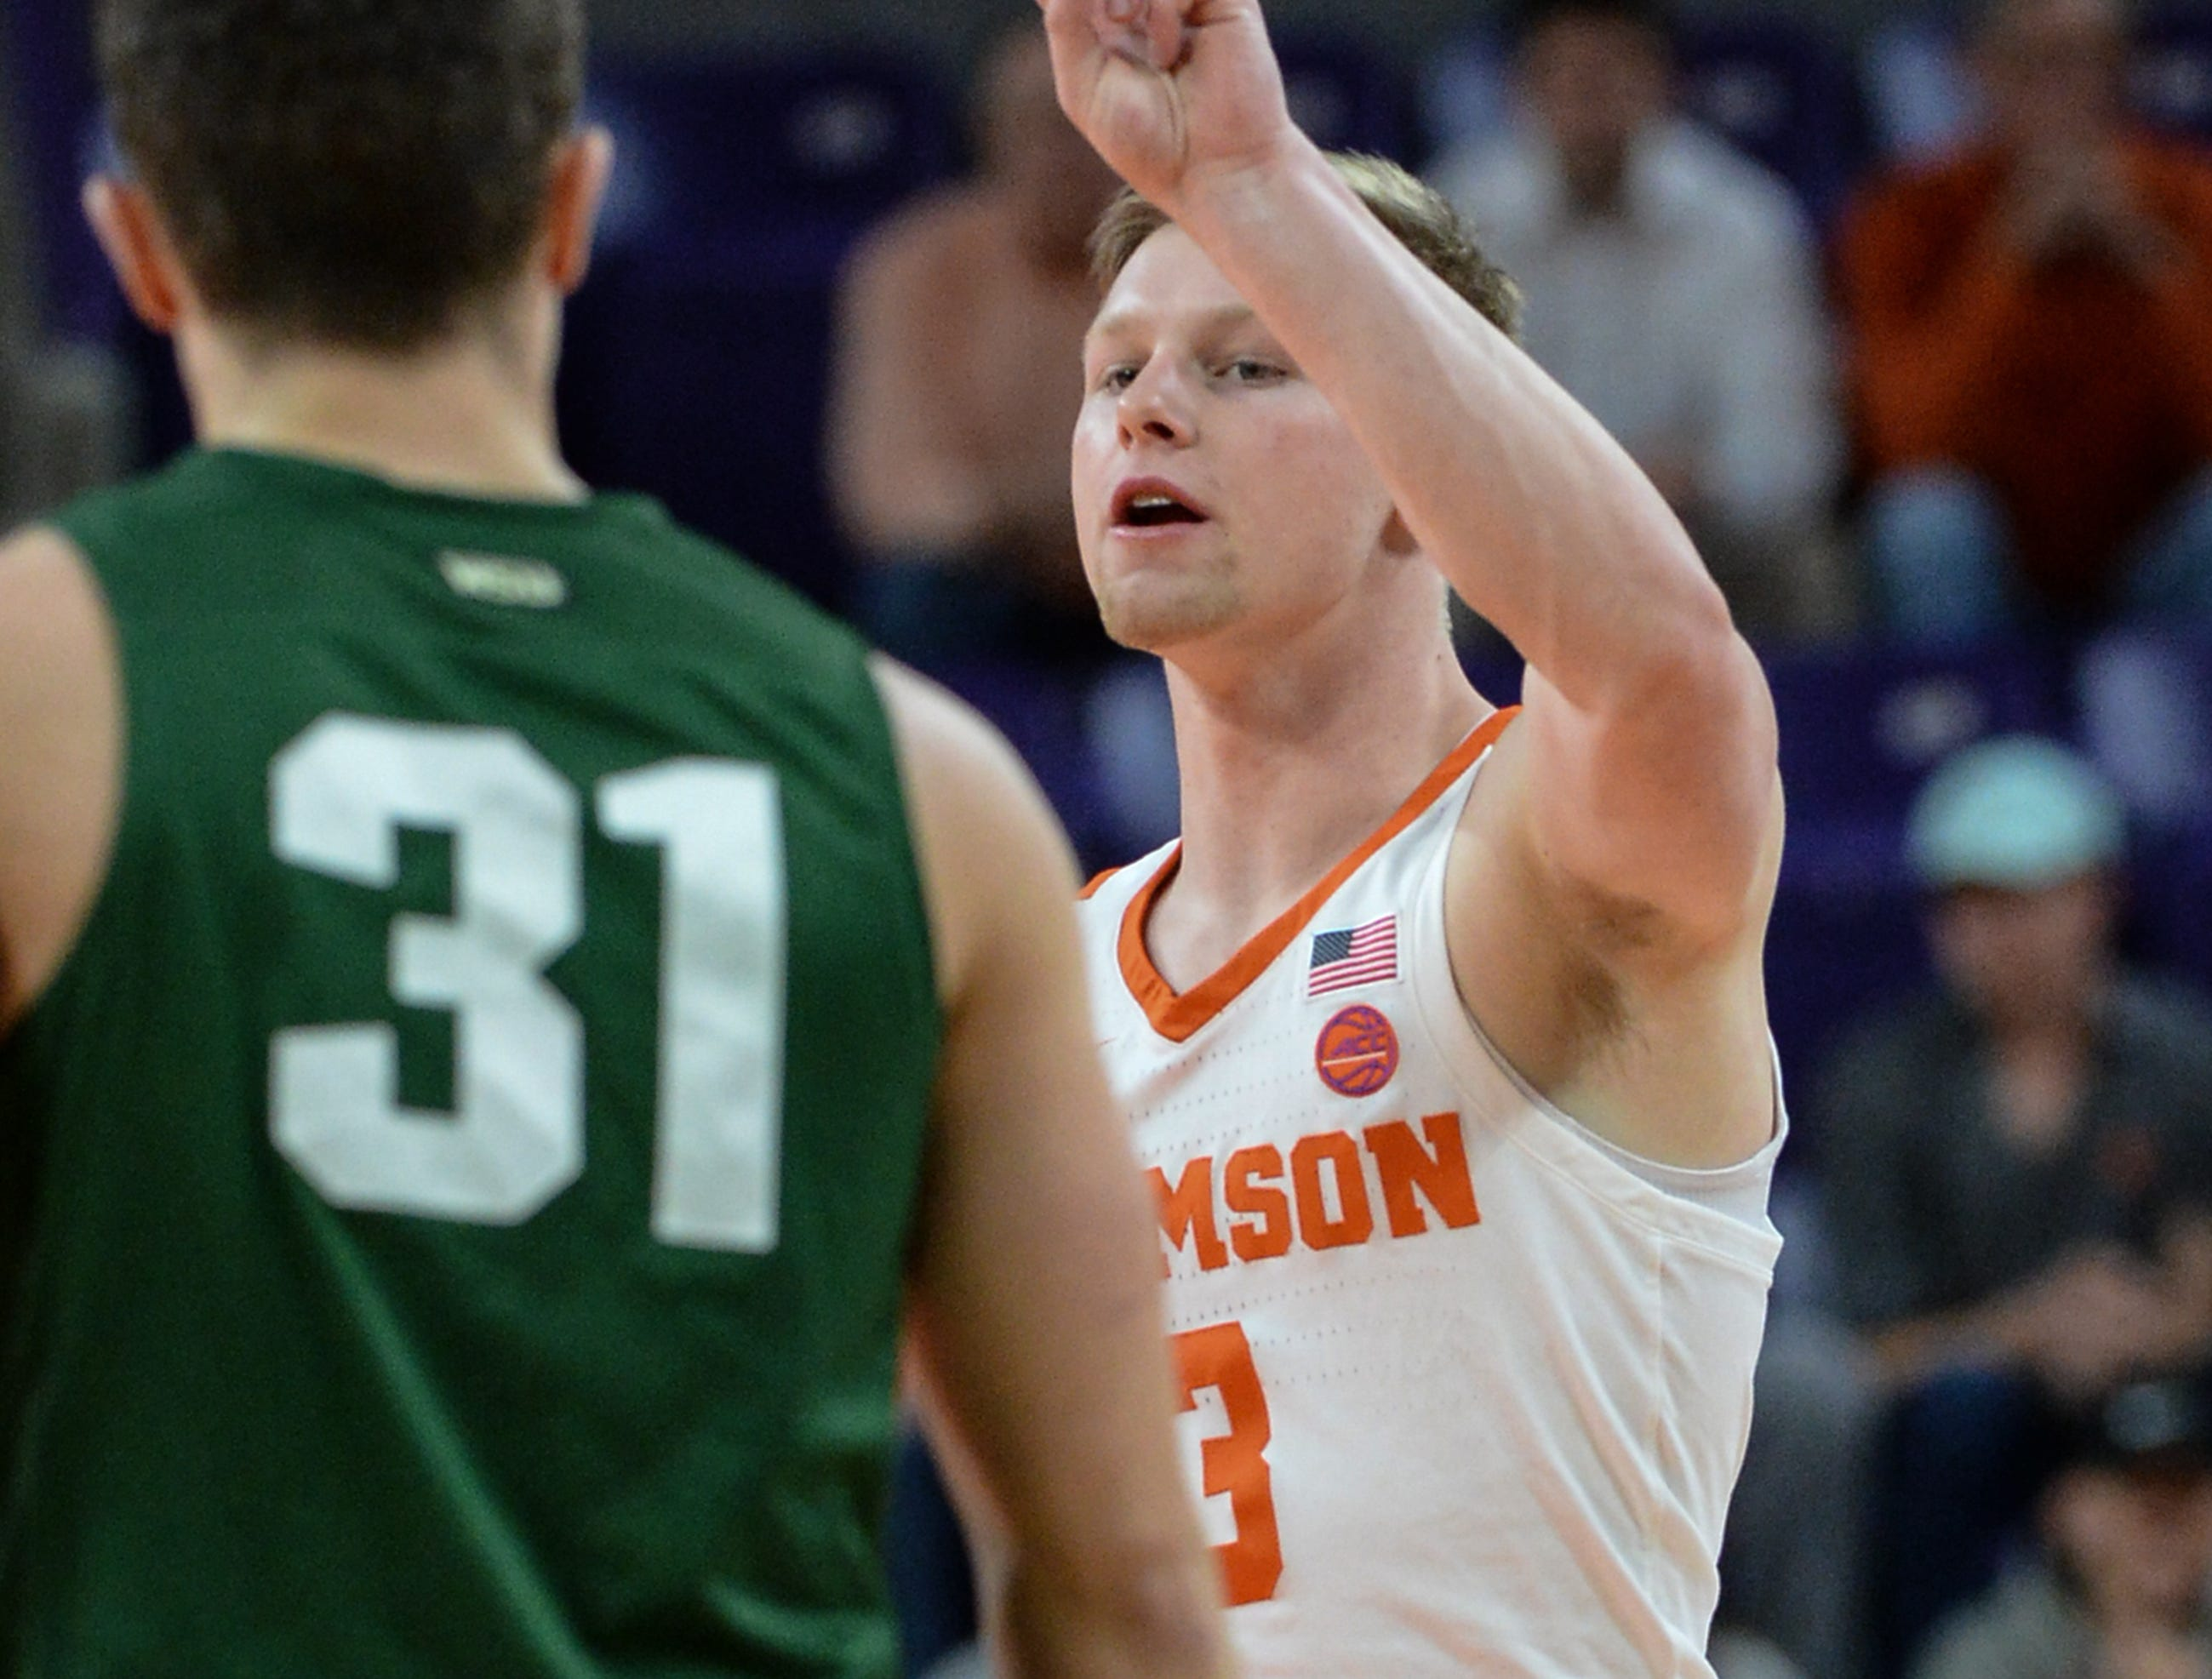 Clemson guard Lyles Davis (3) signals a play against Wright State during the first half of the NIT at Littlejohn Coliseum in Clemson Tuesday, March 19, 2019.